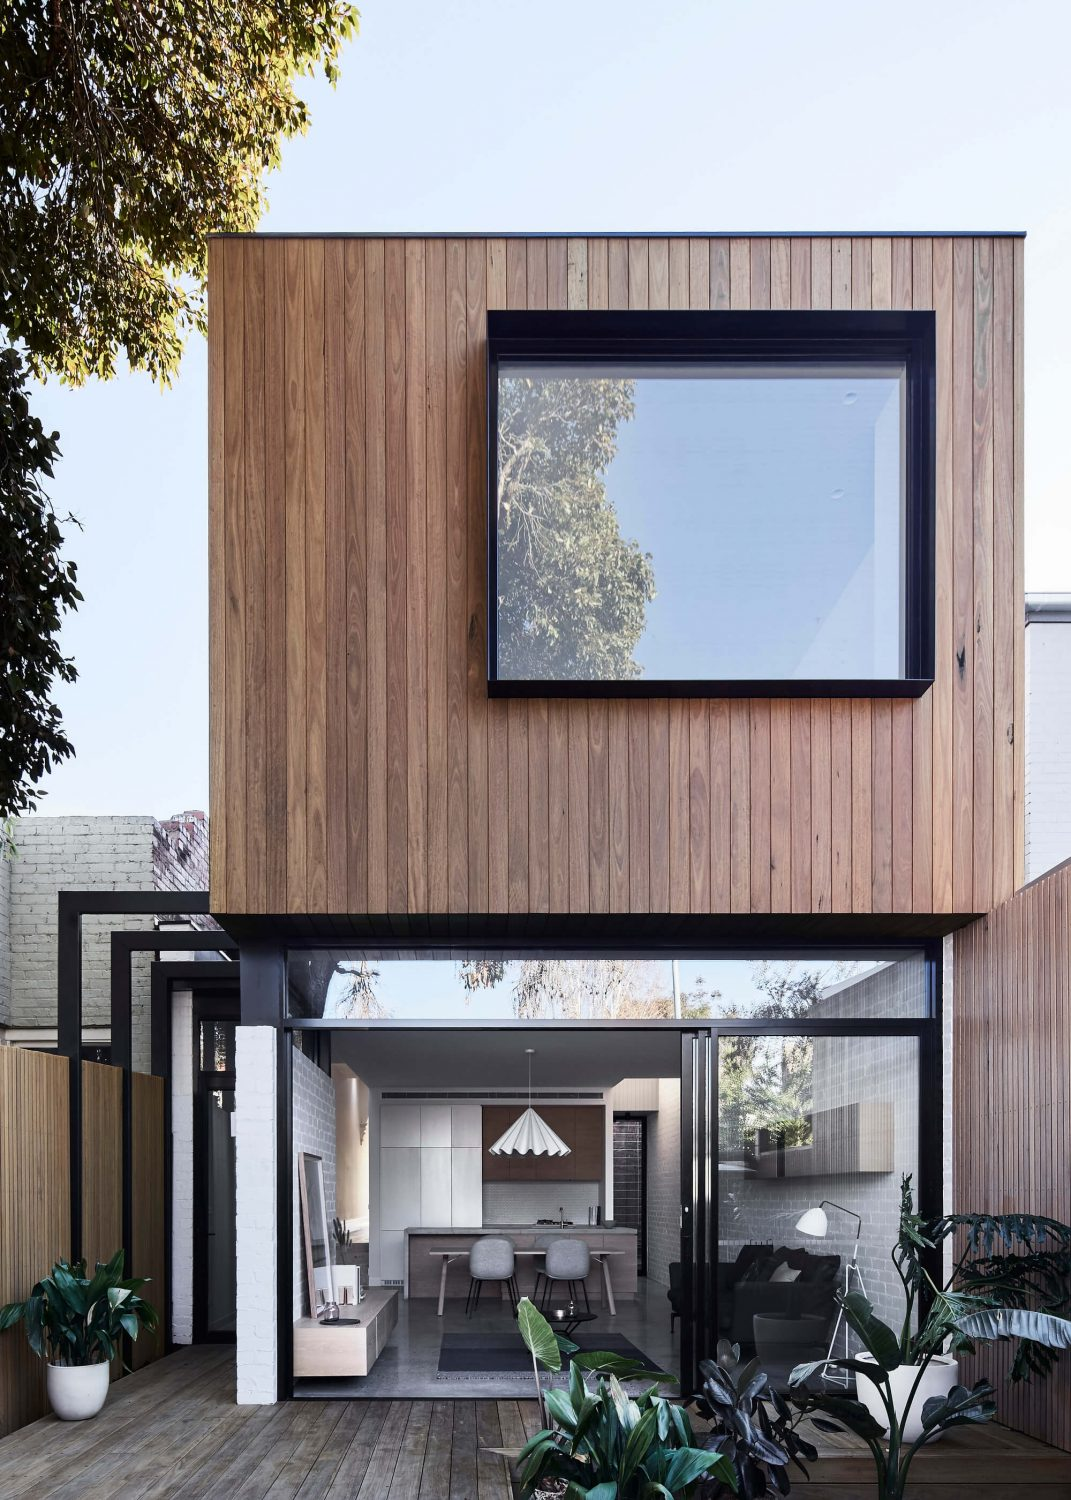 Loft House by Tom Robertson Architects